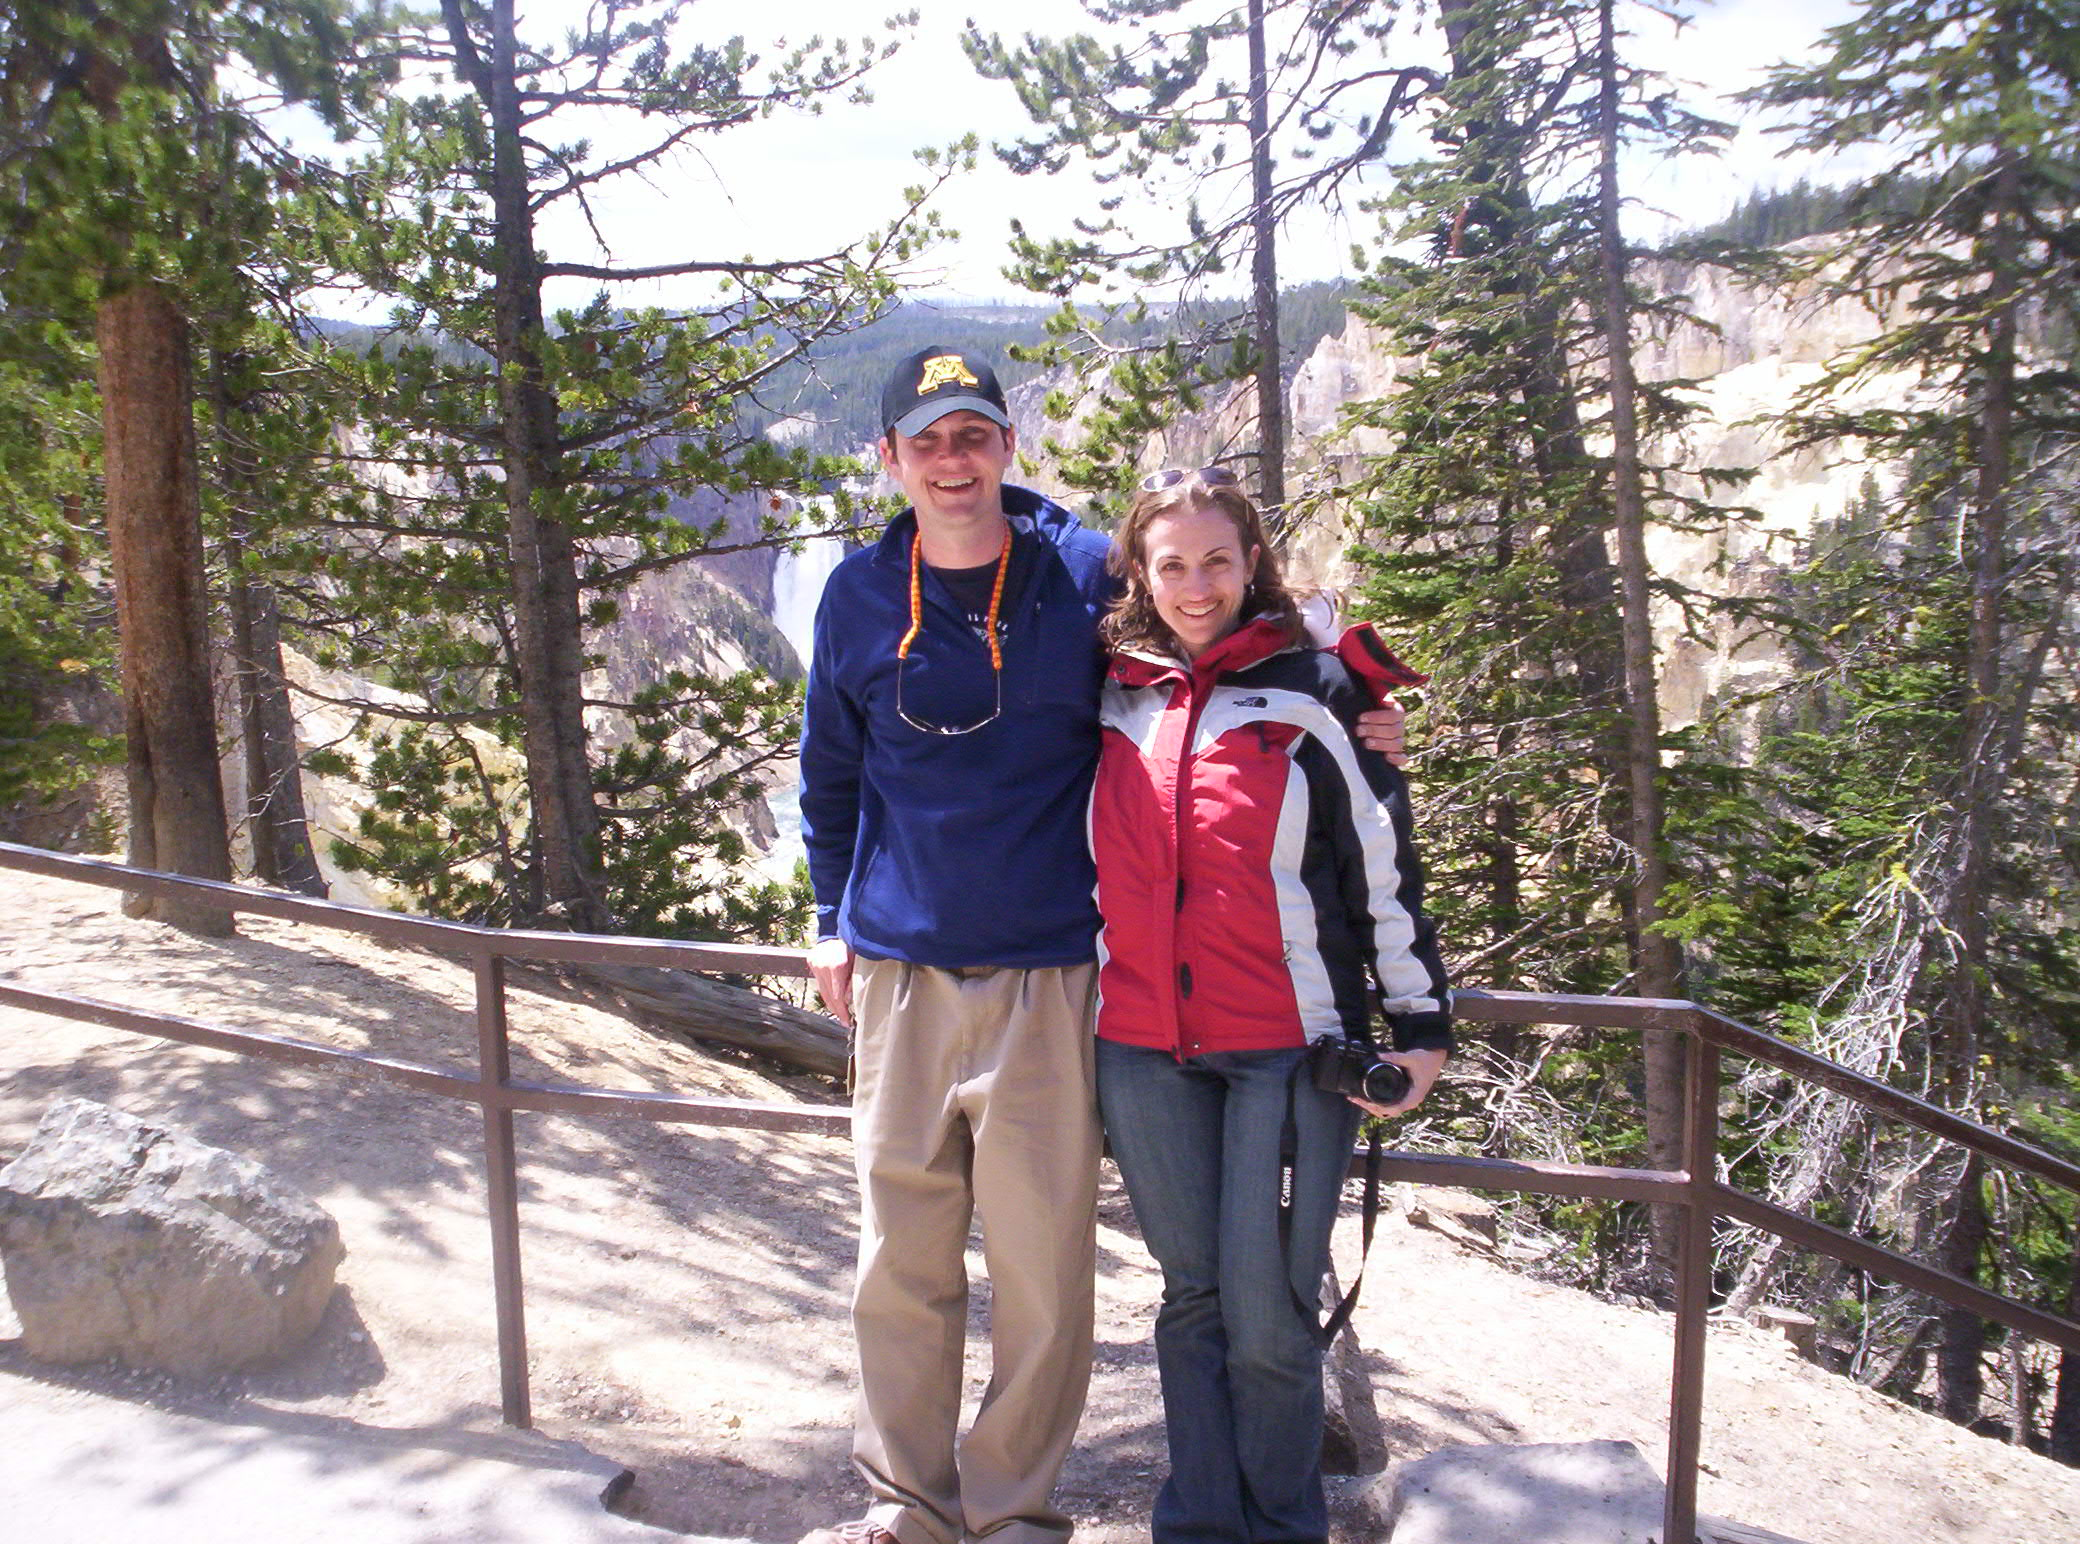 Dan and Jessica at Artist Point, Yellowstone National Park, 2007